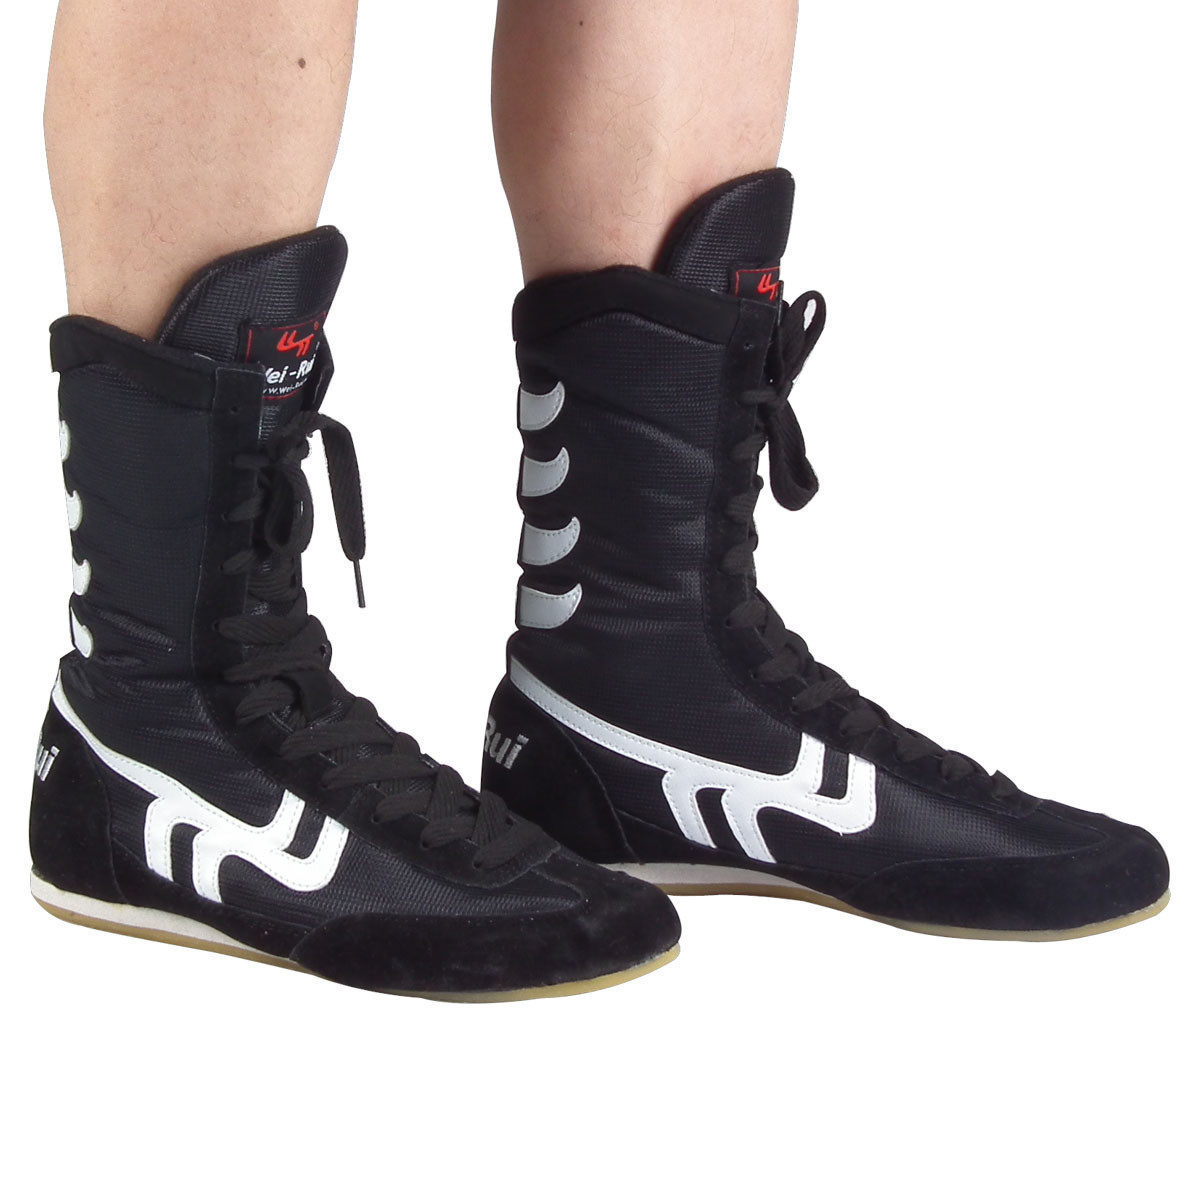 2017 High quality Wrestling Shoes high waist boxing shoes cow muscle outsole breathable pro wrestling gear for children high quality black boxing shoes men women training shoes sport sneakers professional martial art mma grappling boxing shoes